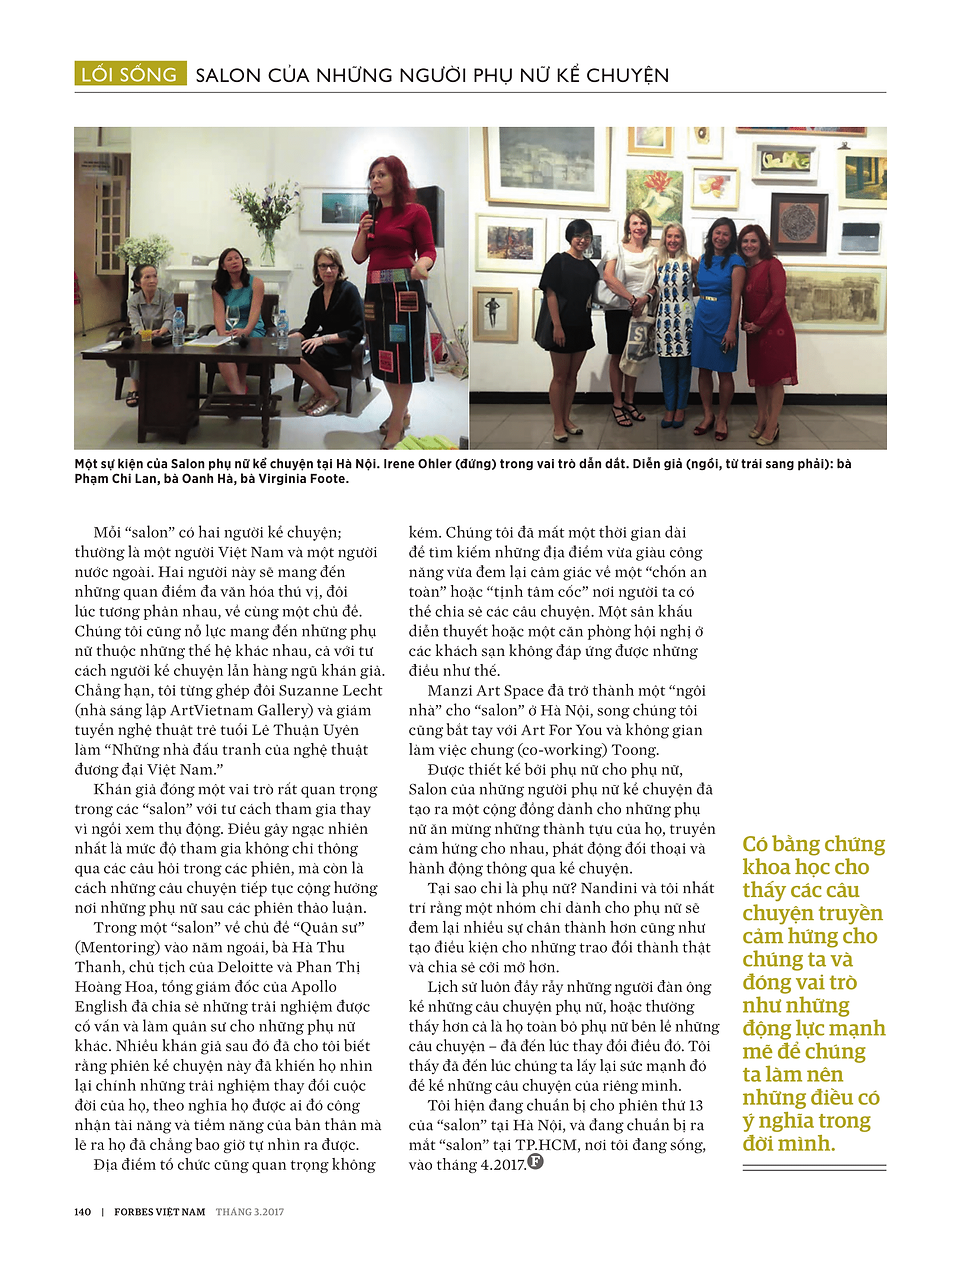 Forbes Vietnam featured the Women's Storytelling Salon in a special March2017 issue celebrating International Women'sDay.